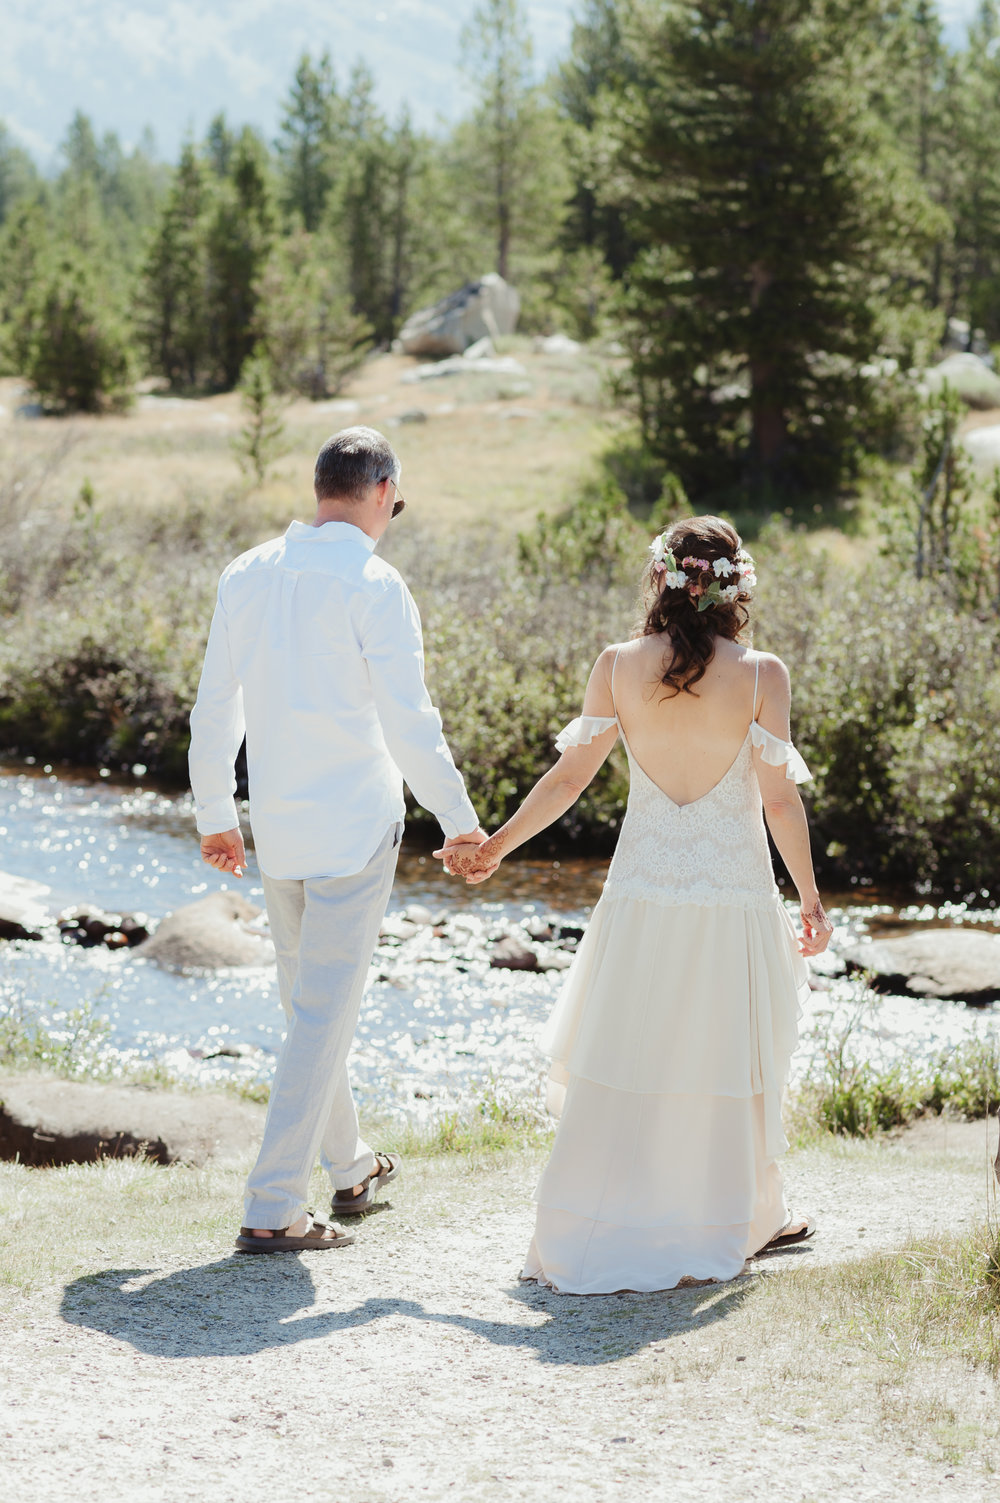 tenaya-lake-yosemite-national-park-wedding-photographer-vc52.jpg